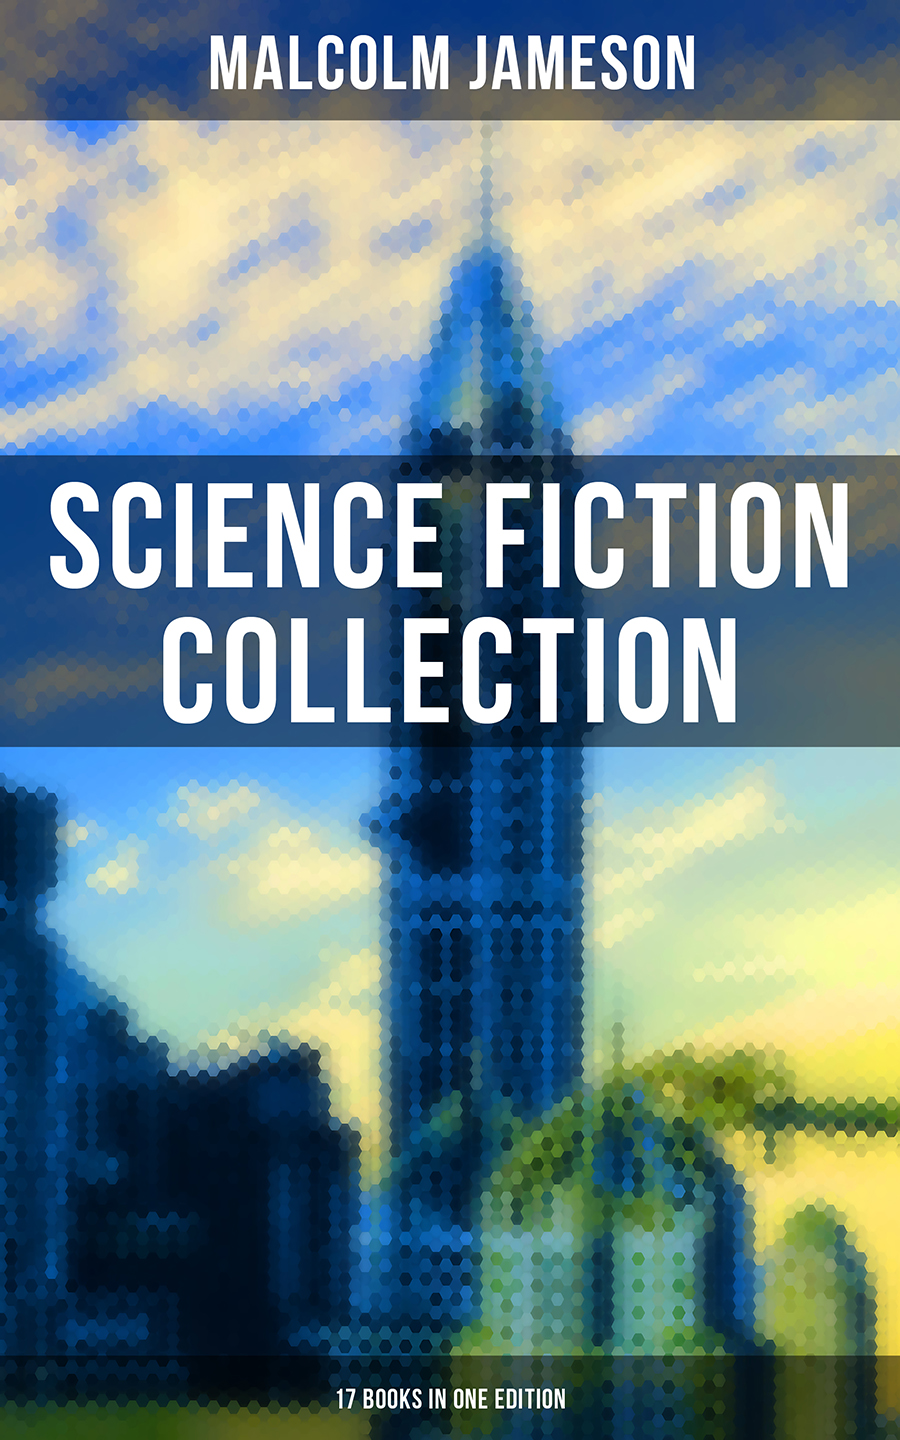 Malcolm Jameson MALCOLM JAMESON: Science Fiction Collection - 17 Books in One Edition все цены